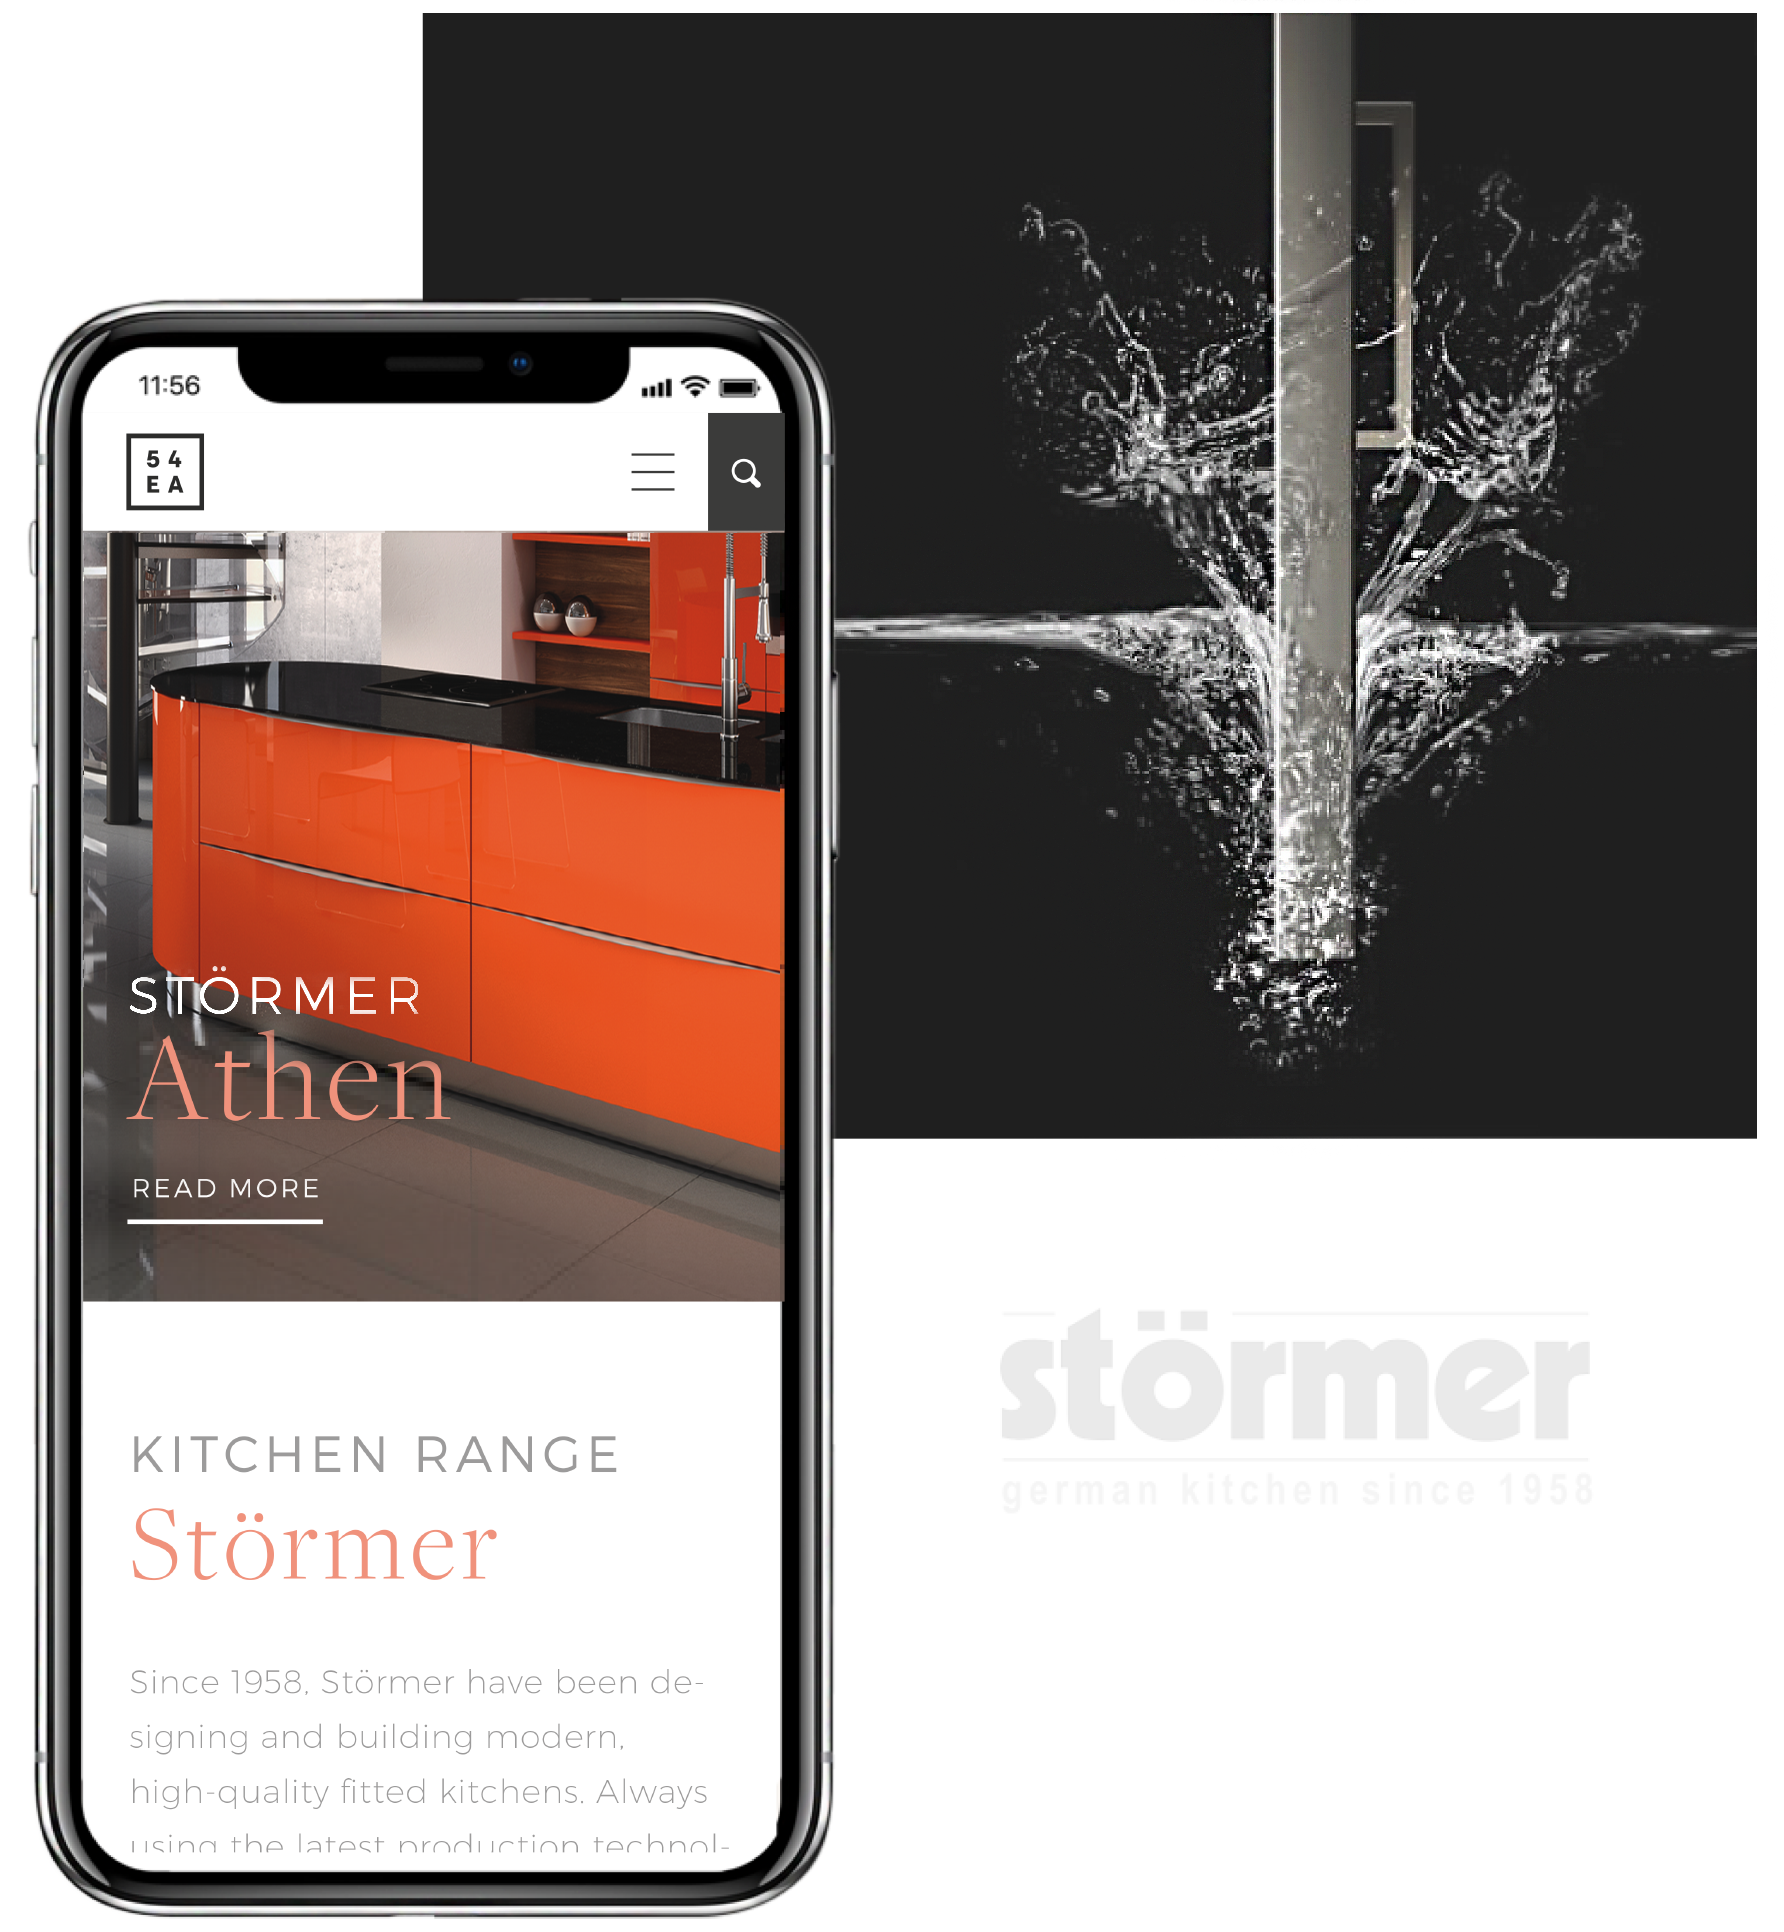 54EA Interiors Stormer Kitchen Range